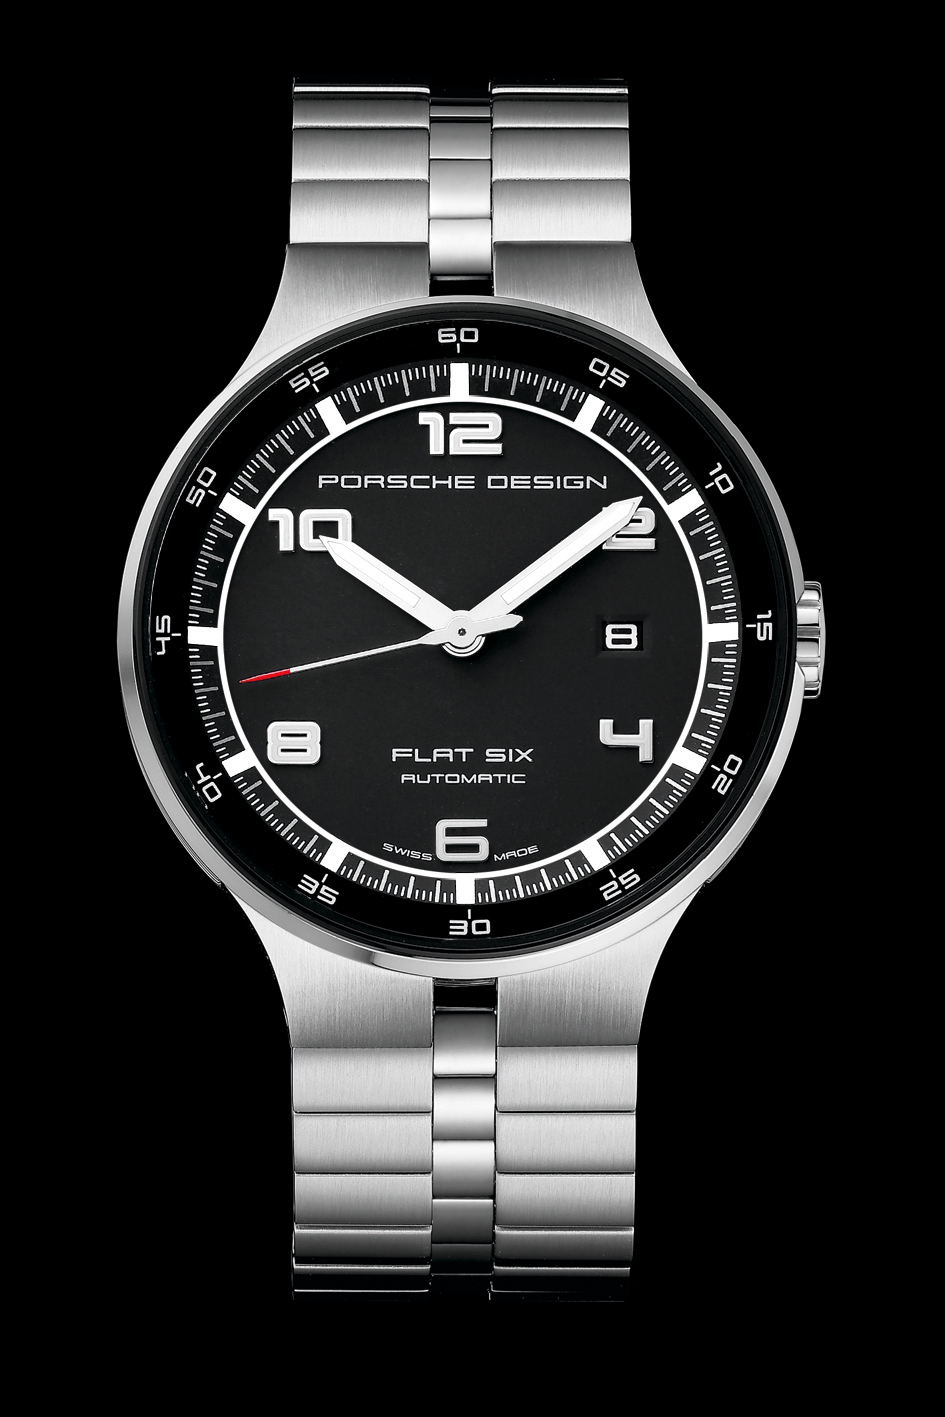 Porsche Design P'6350 Flat Six Automatic 44 timepiece. Iconic style. A puristic timepiece, uniquely interpreted.